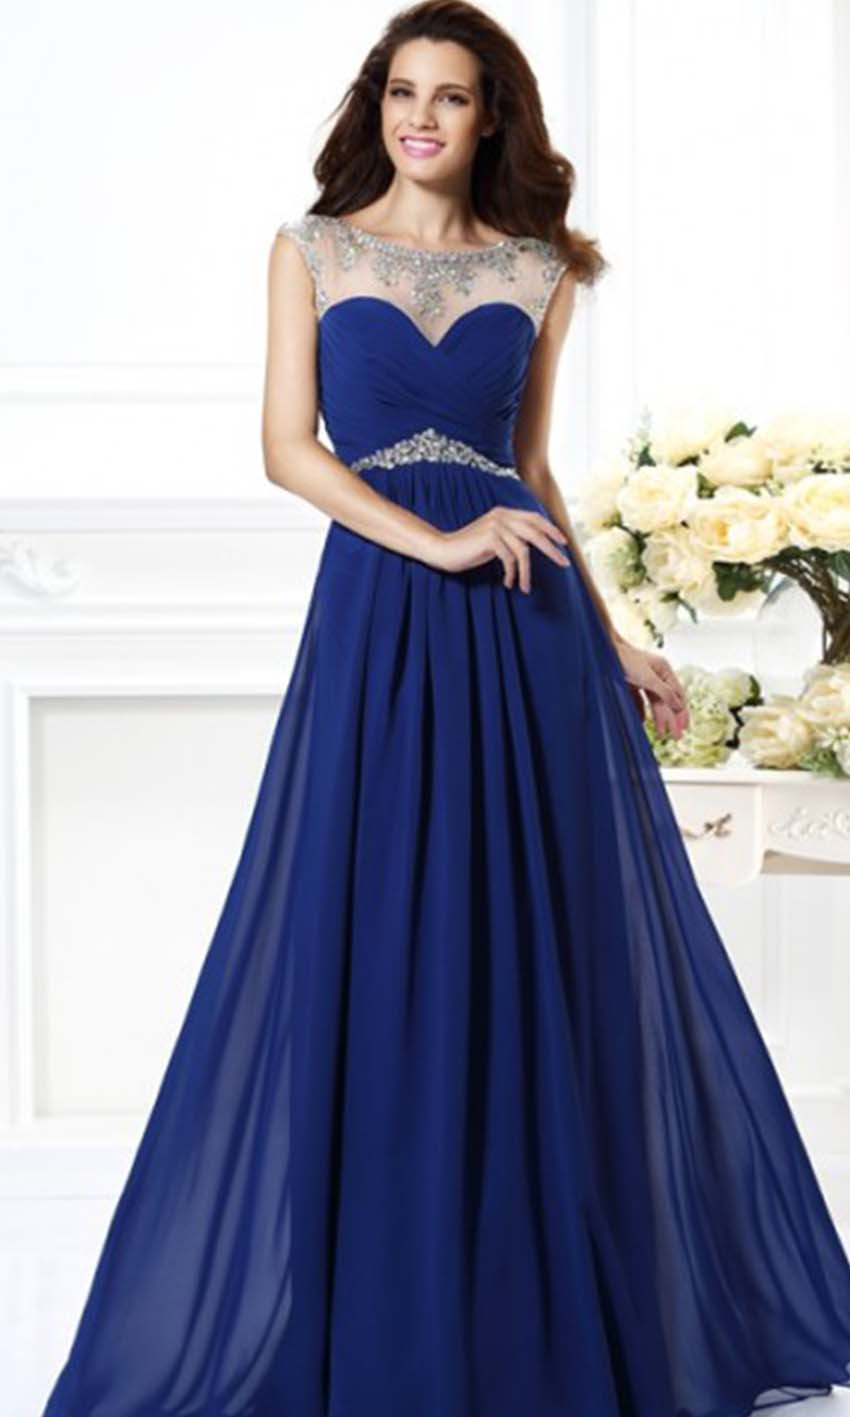 Blue illusion long lace prom dresses uk ksp346 ksp346 9400 blue illusion long lace prom dresses uk ksp346 ksp346 9400 cheap prom dress uk wedding bridesmaid dresses prom 2016 dresses kissprom offers ombrellifo Image collections